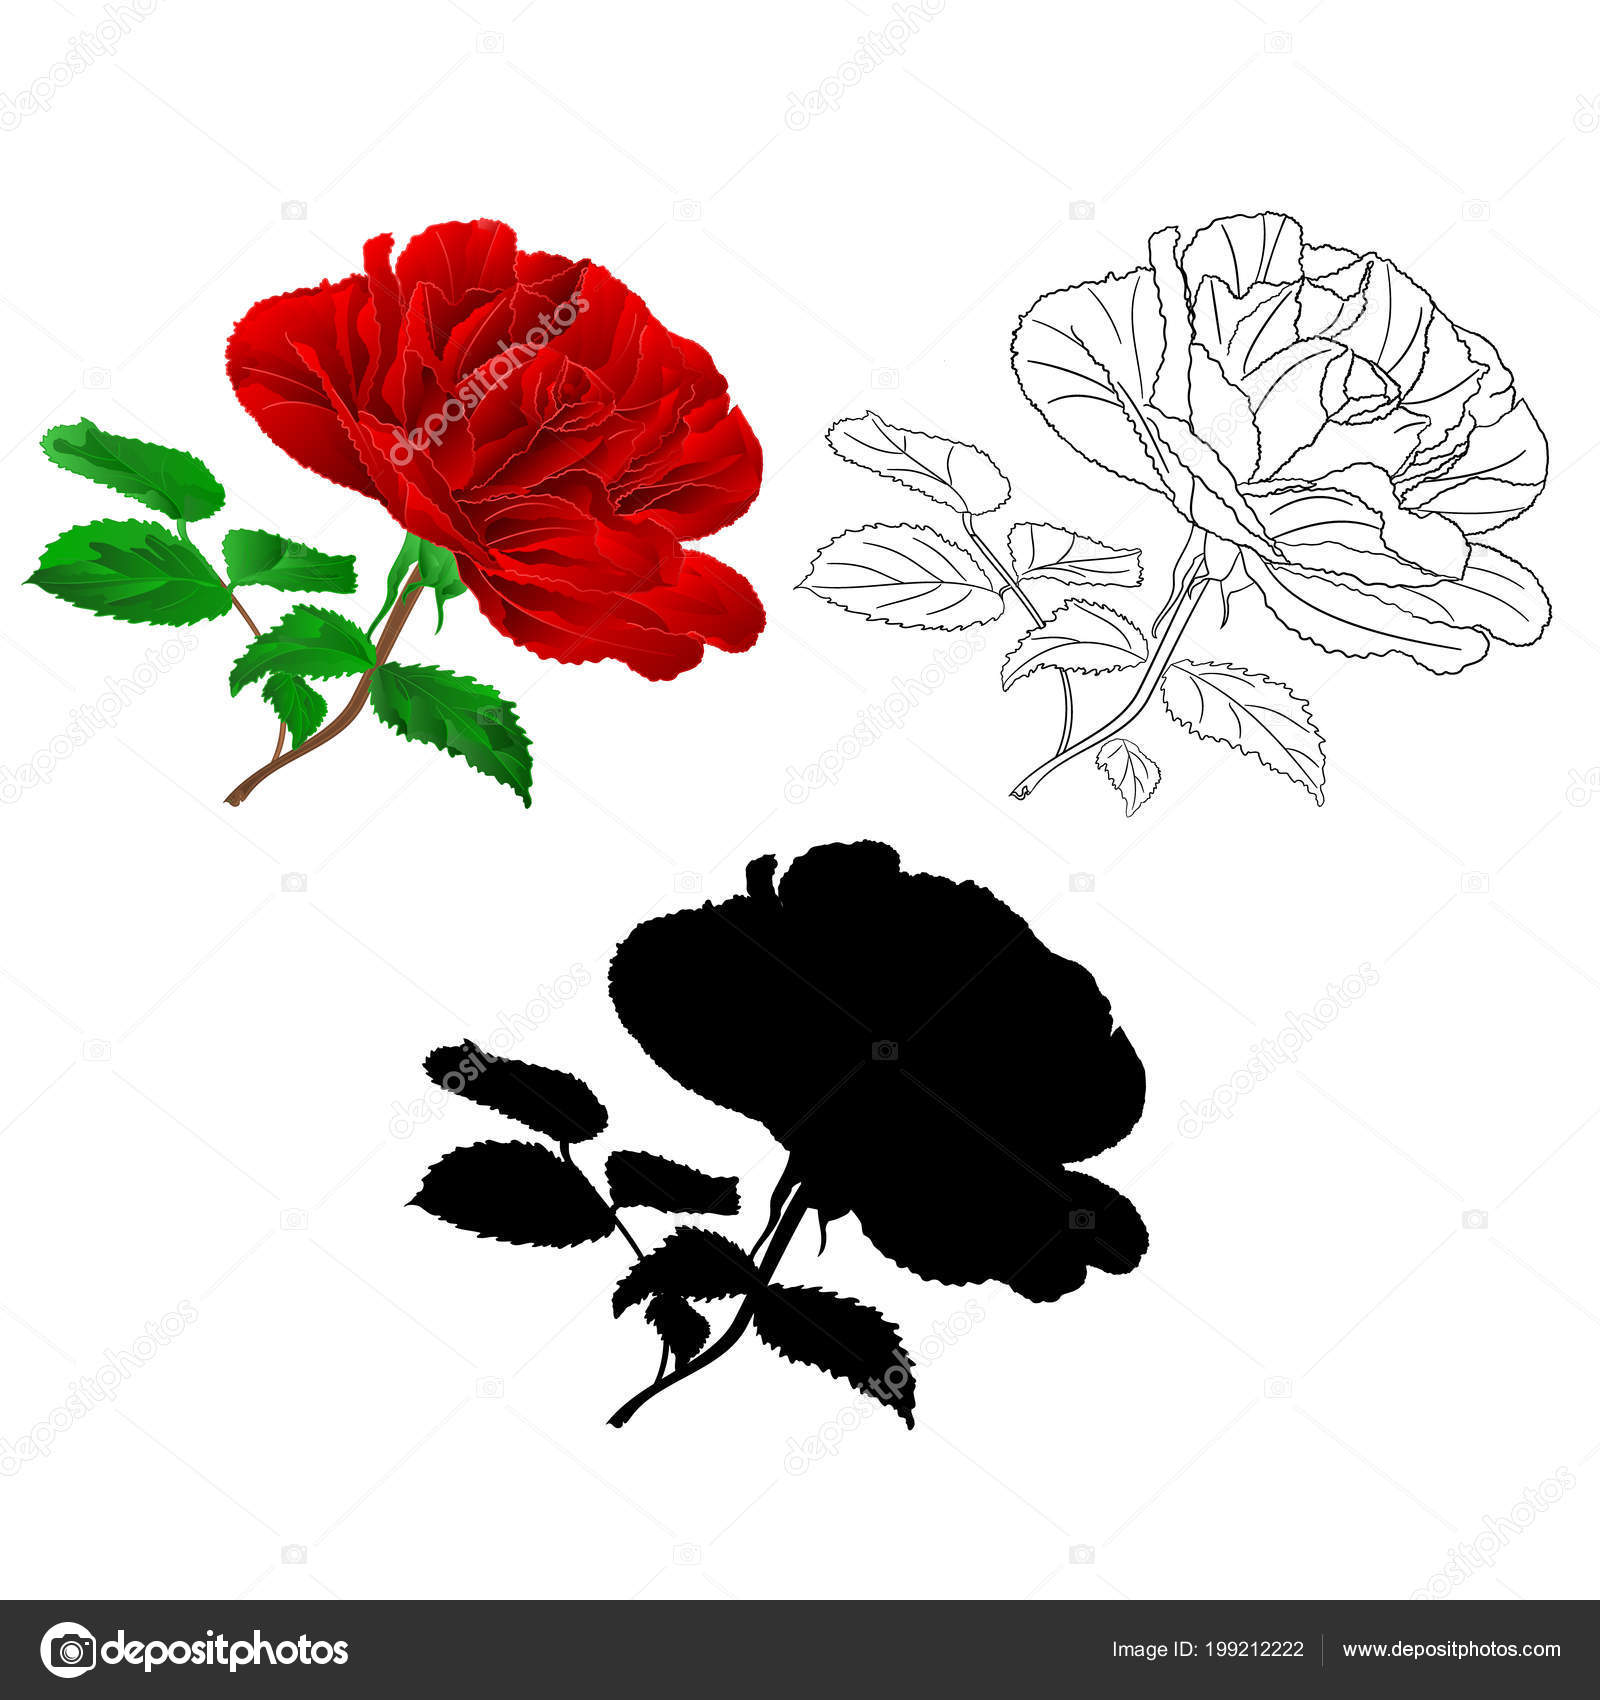 Drawings Simple Rose Outline Simple Red Rose Stem Leaves Natural Outline Silhouette Vintage White Stock Vector C Tina5 199212222